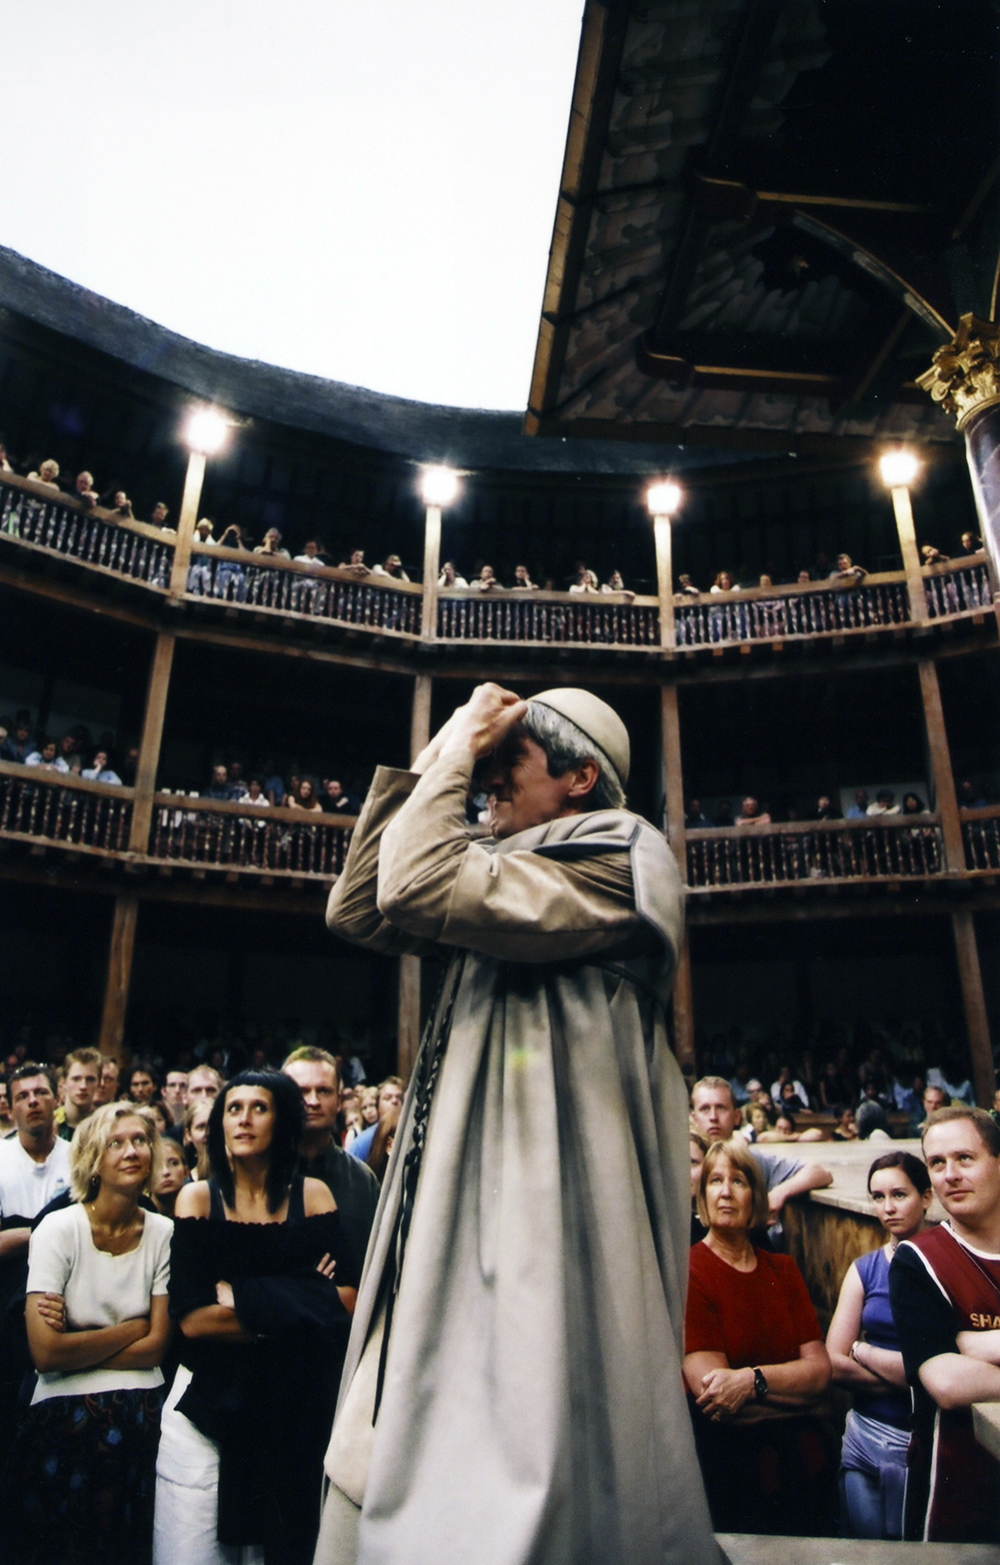 A man holding his hands up to his face stands in the Yard of the Globe Theatre, surrounded by audience members.